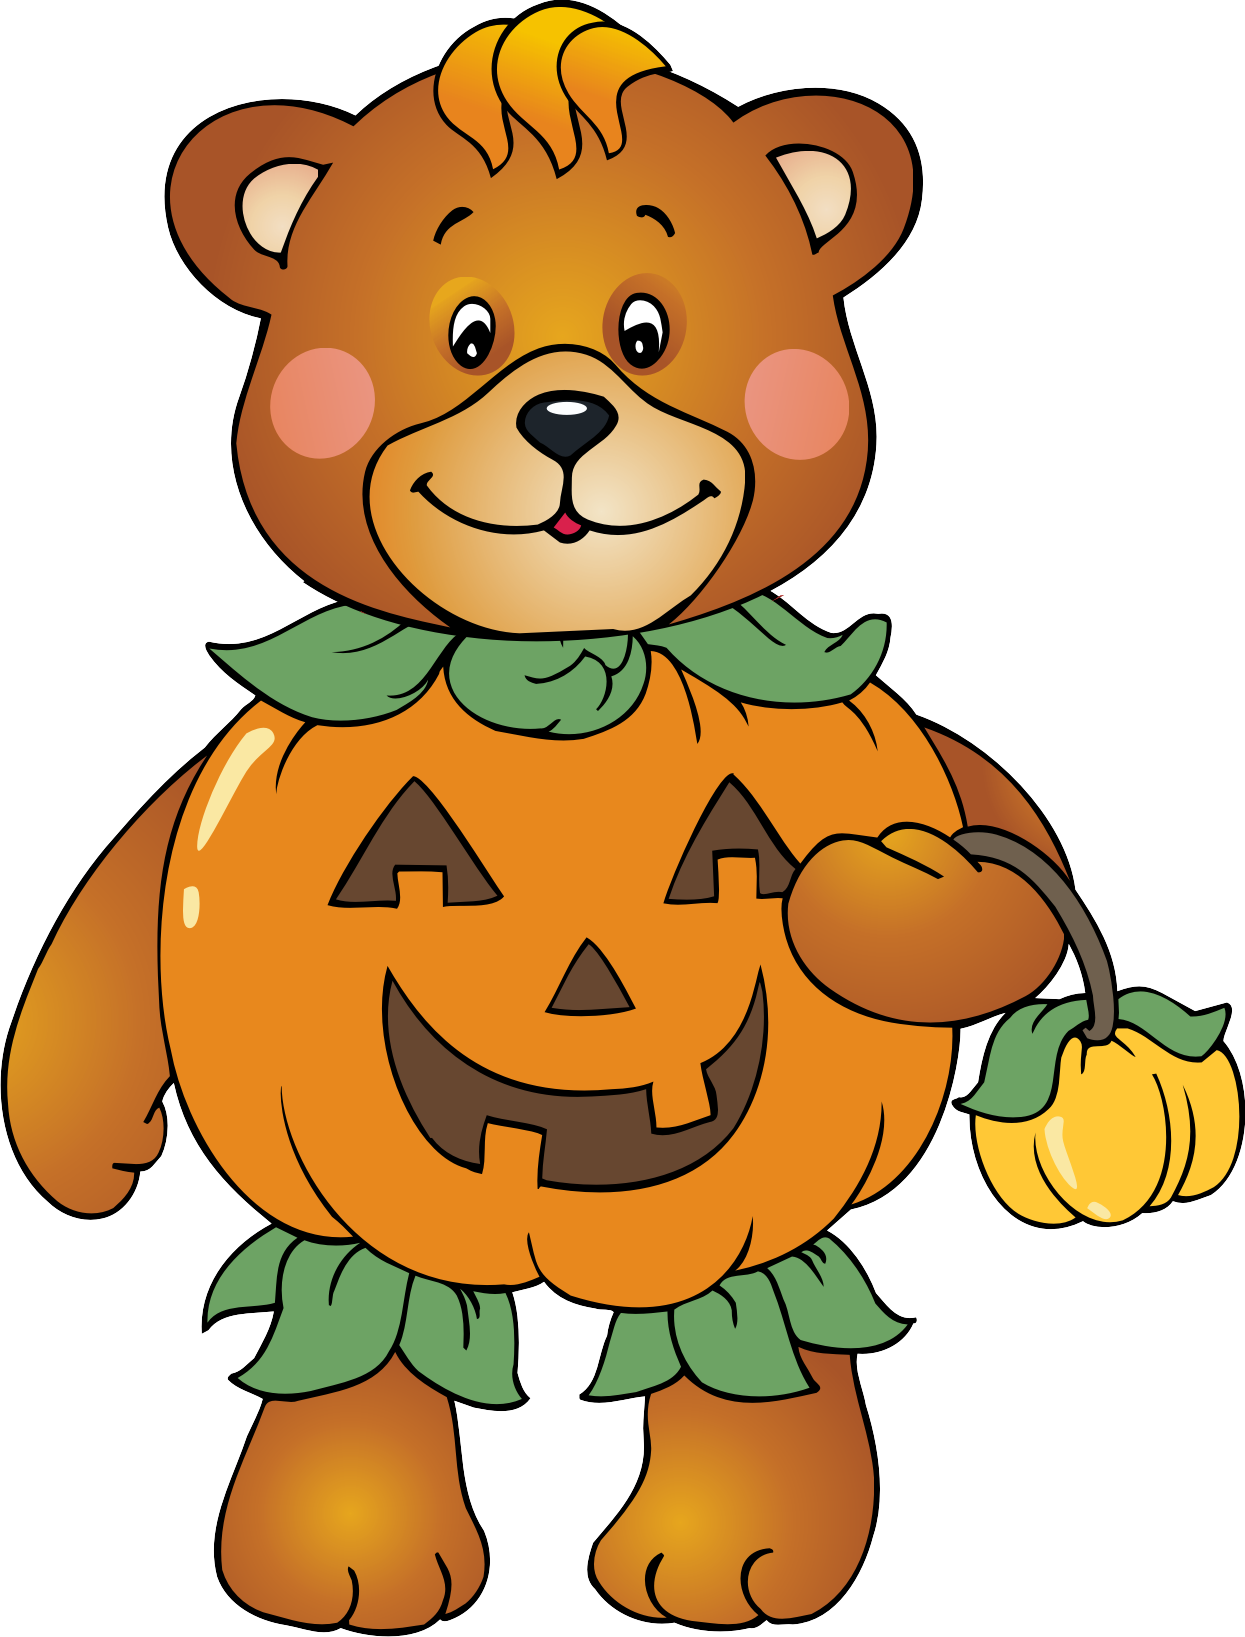 Charlie brown pumpkin clipart picture transparent stock Halloween Bear Clipart picture transparent stock